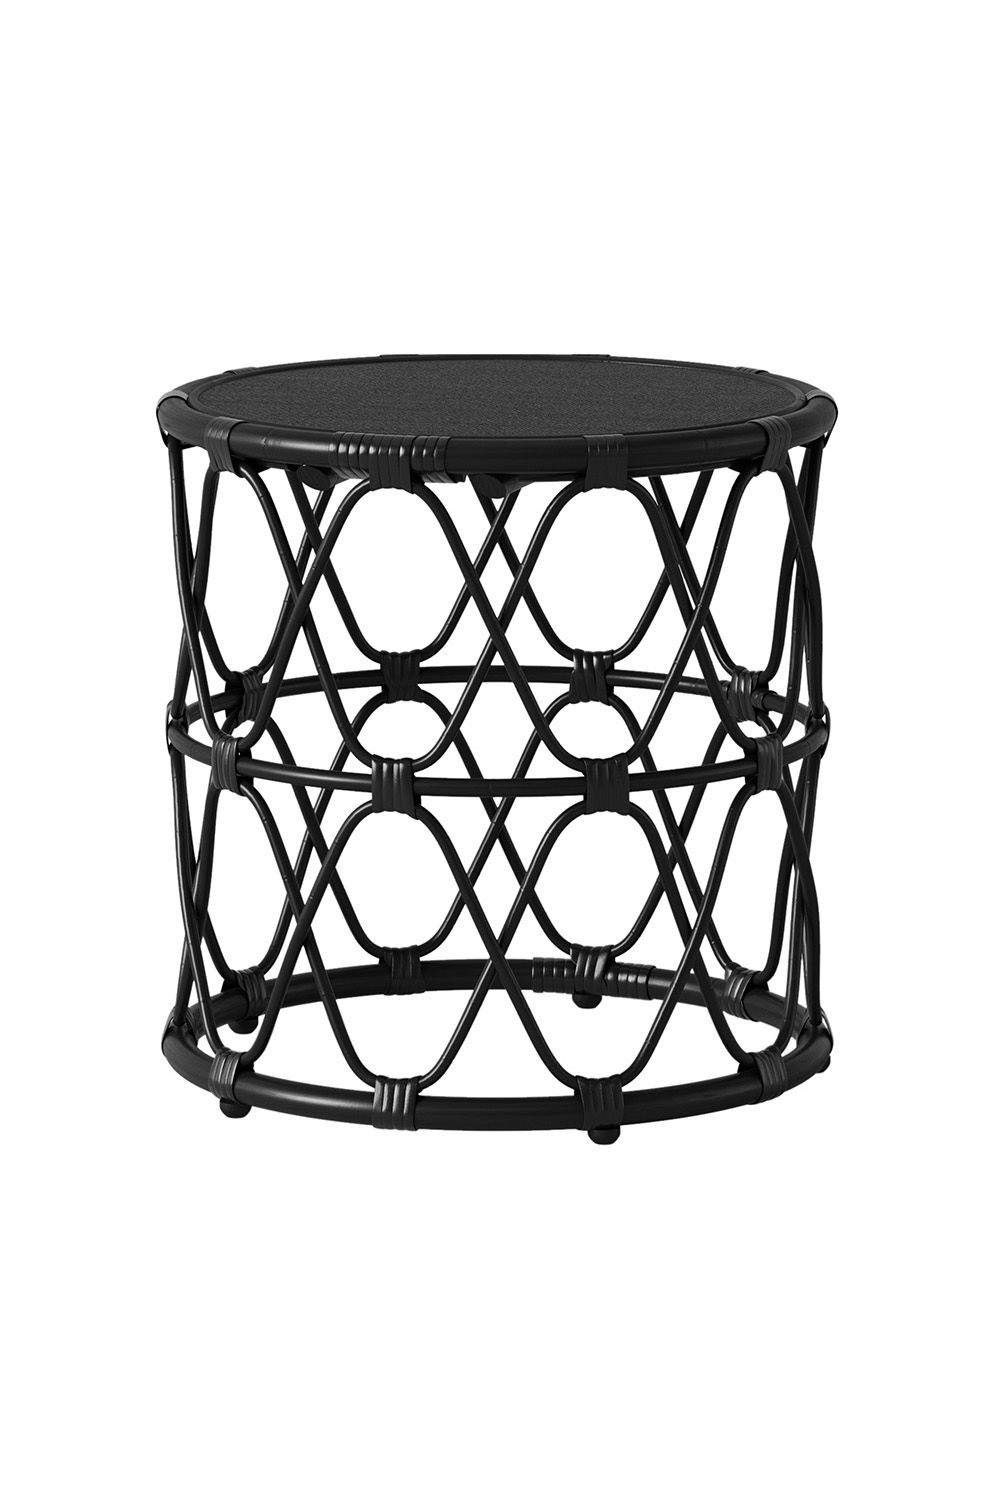 target new opalhouse collection affordable home side table hardwood furniture outdoor prep kitchen centerpieces black patio covers office and silver coffee gingham tablecloths